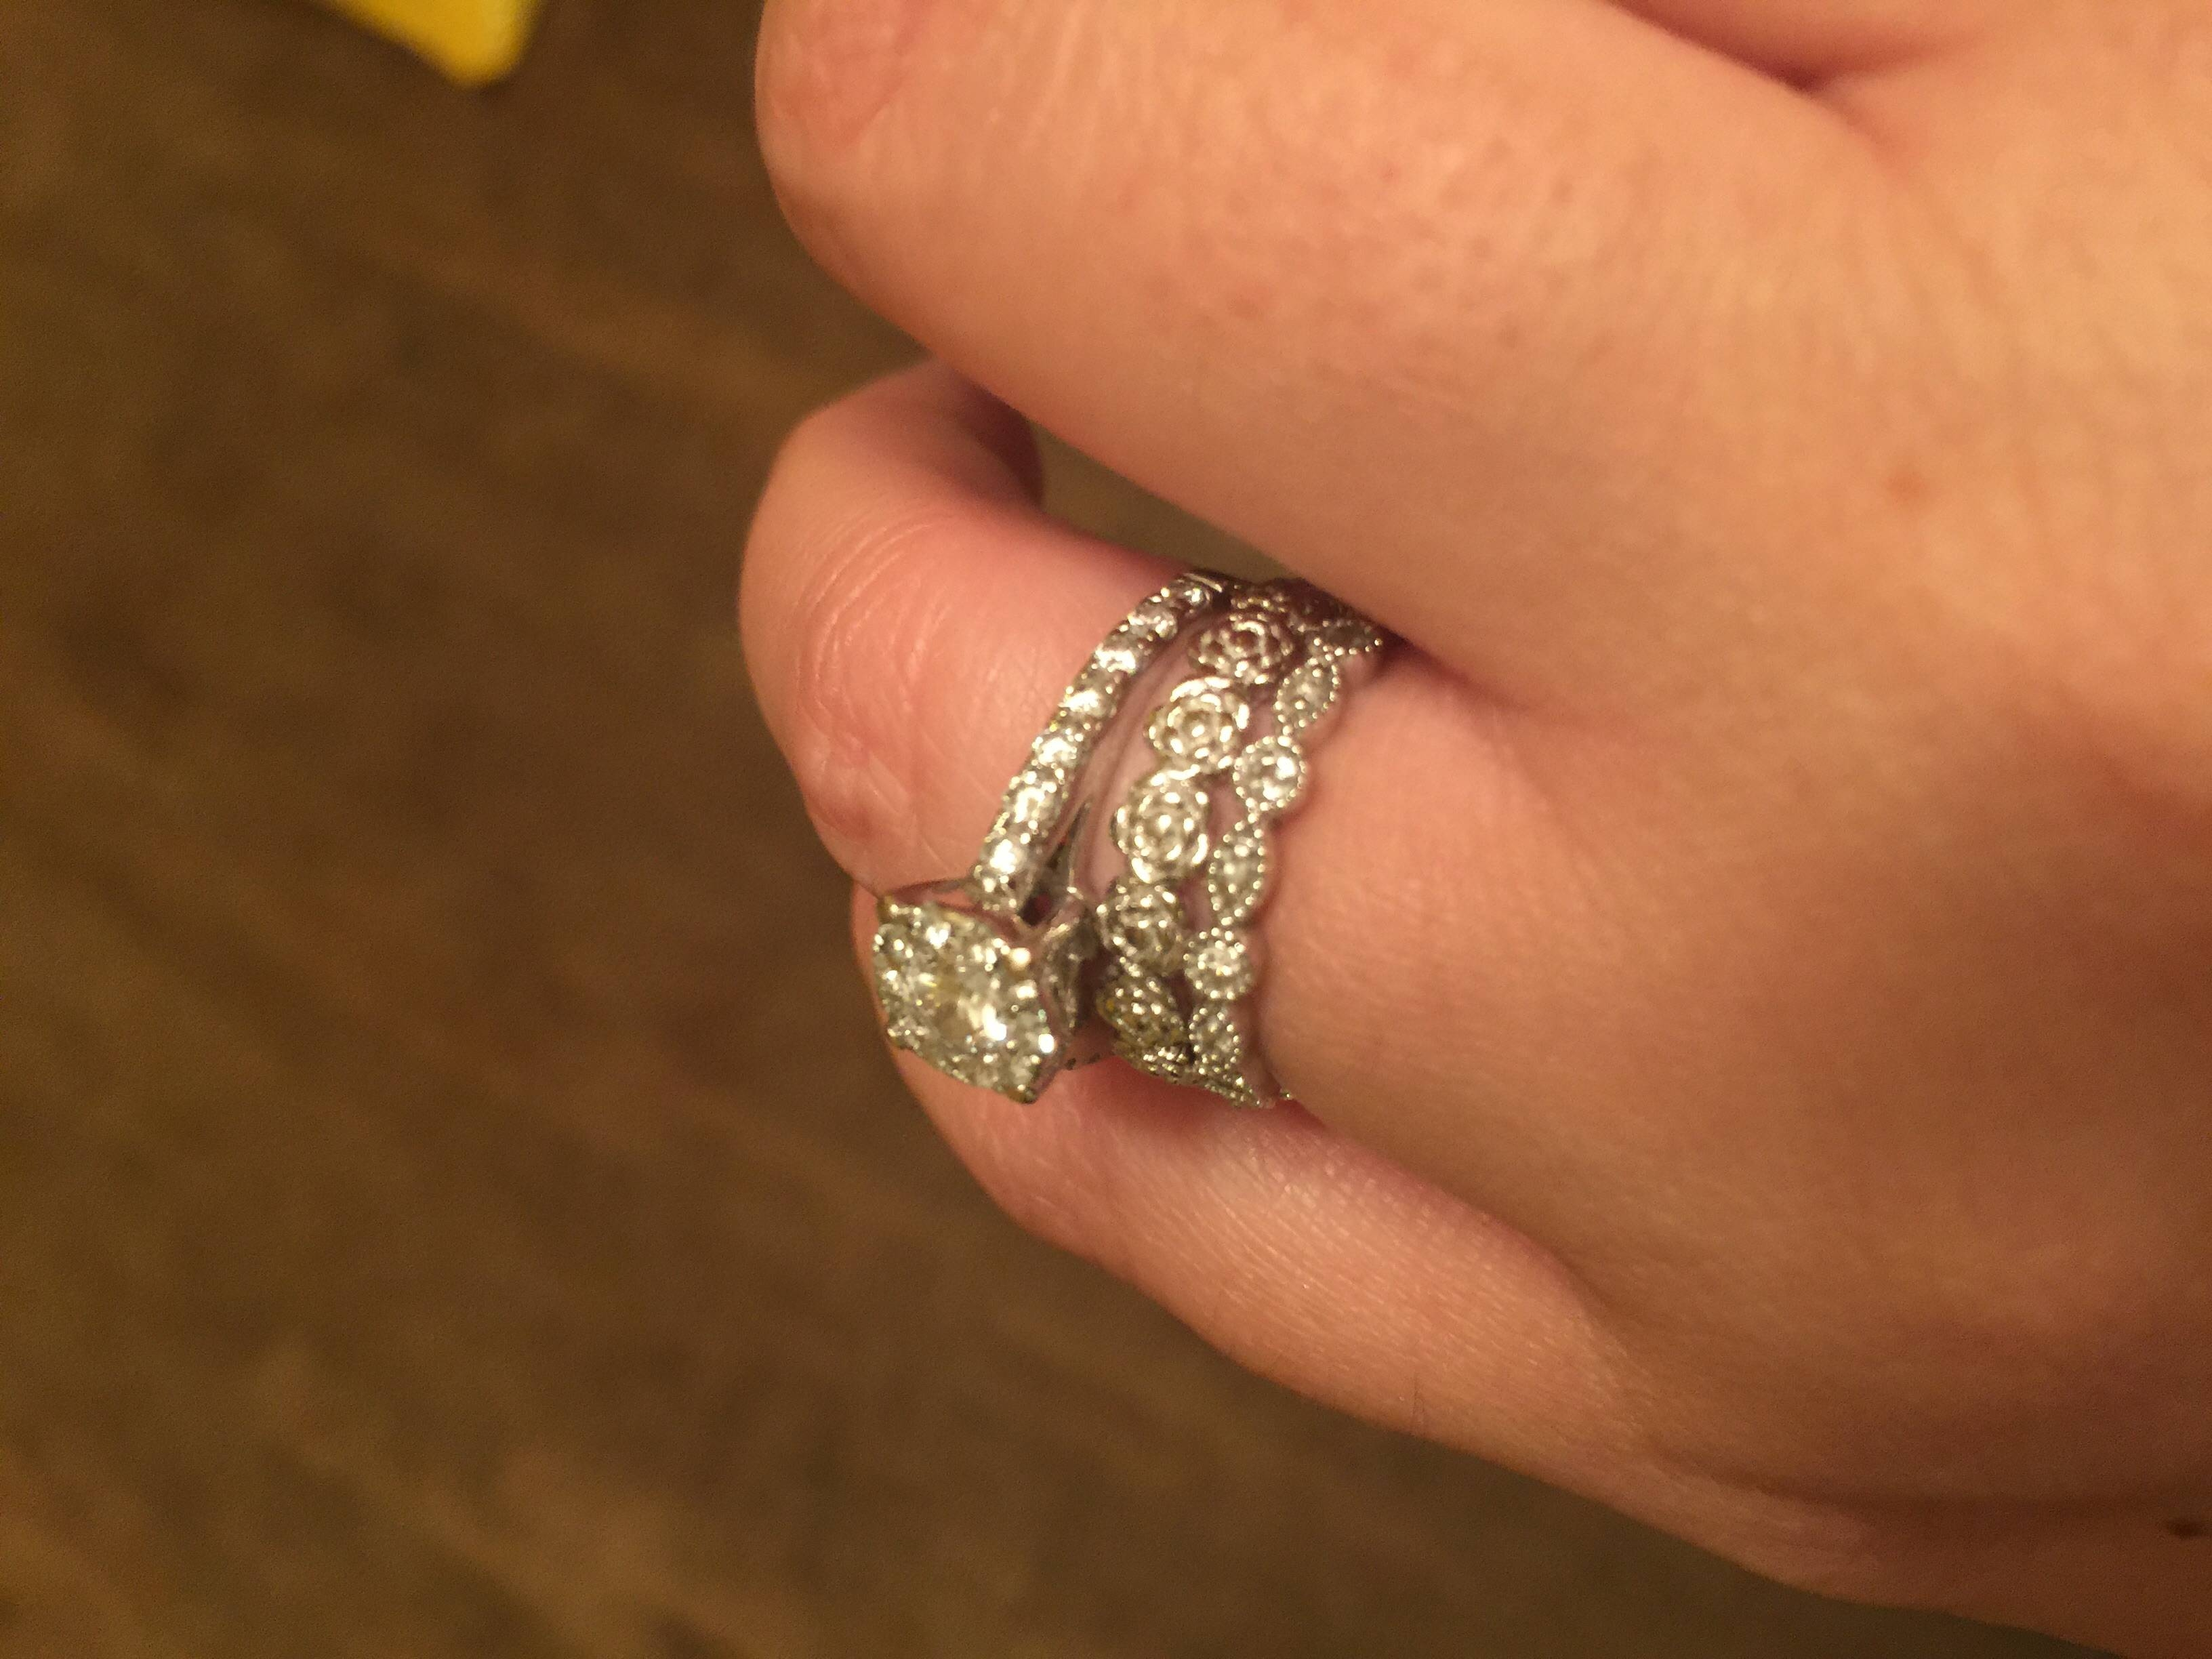 New Anniversary Bands Came Today! Pics :) – Weddingbee With Regard To Most Up To Date One Year Anniversary Rings (Gallery 5 of 25)